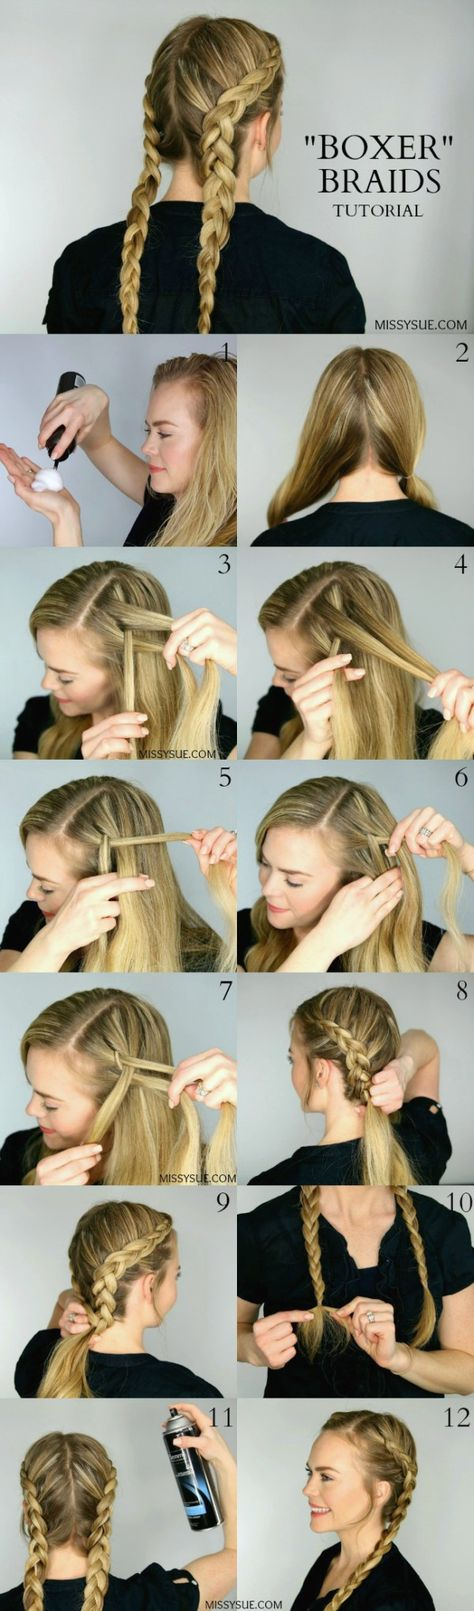 boxer-braids-tutorial-4